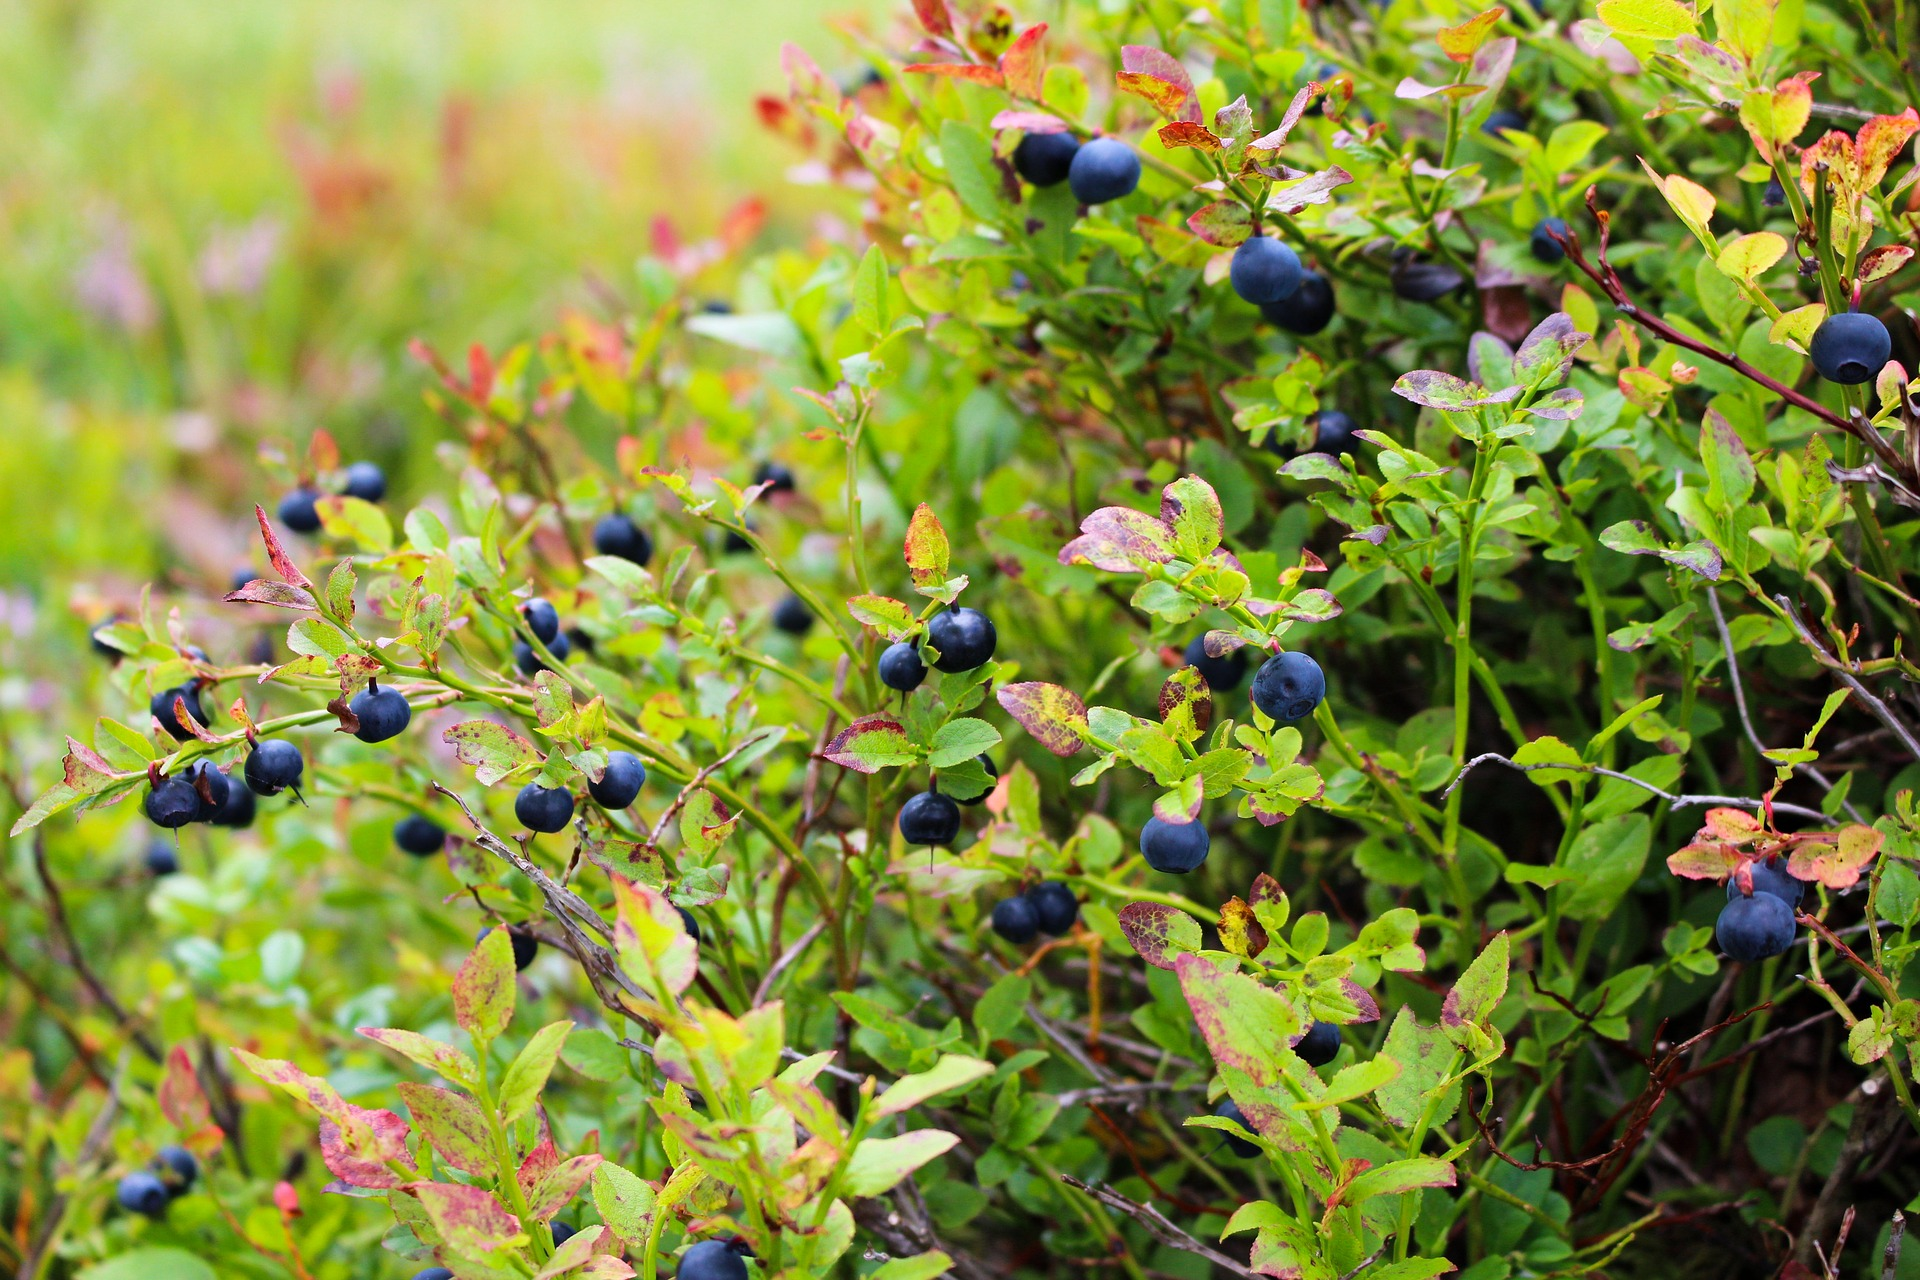 A heather blueberry plant takes up the whole frame. Small, dark blue berries dot a shrub with rounded leaves. Most leaves are bright green, some are orange and red.